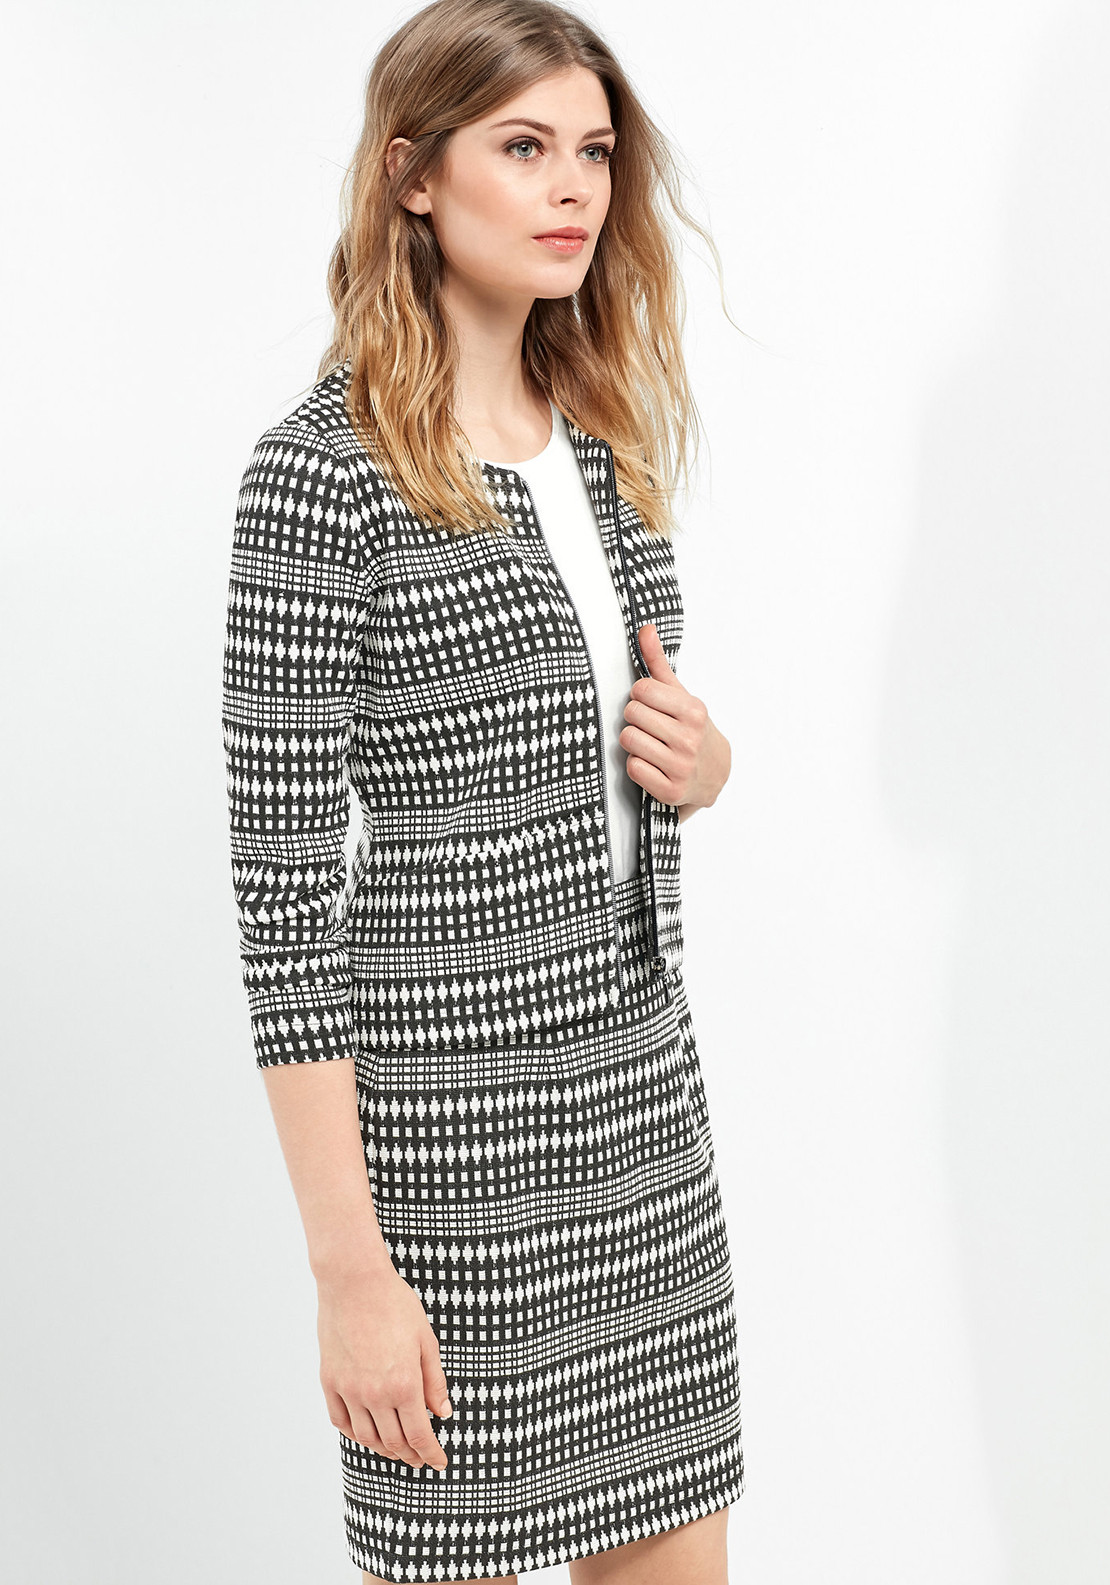 Gerry Weber Ethnic Print Jacket, Black & White